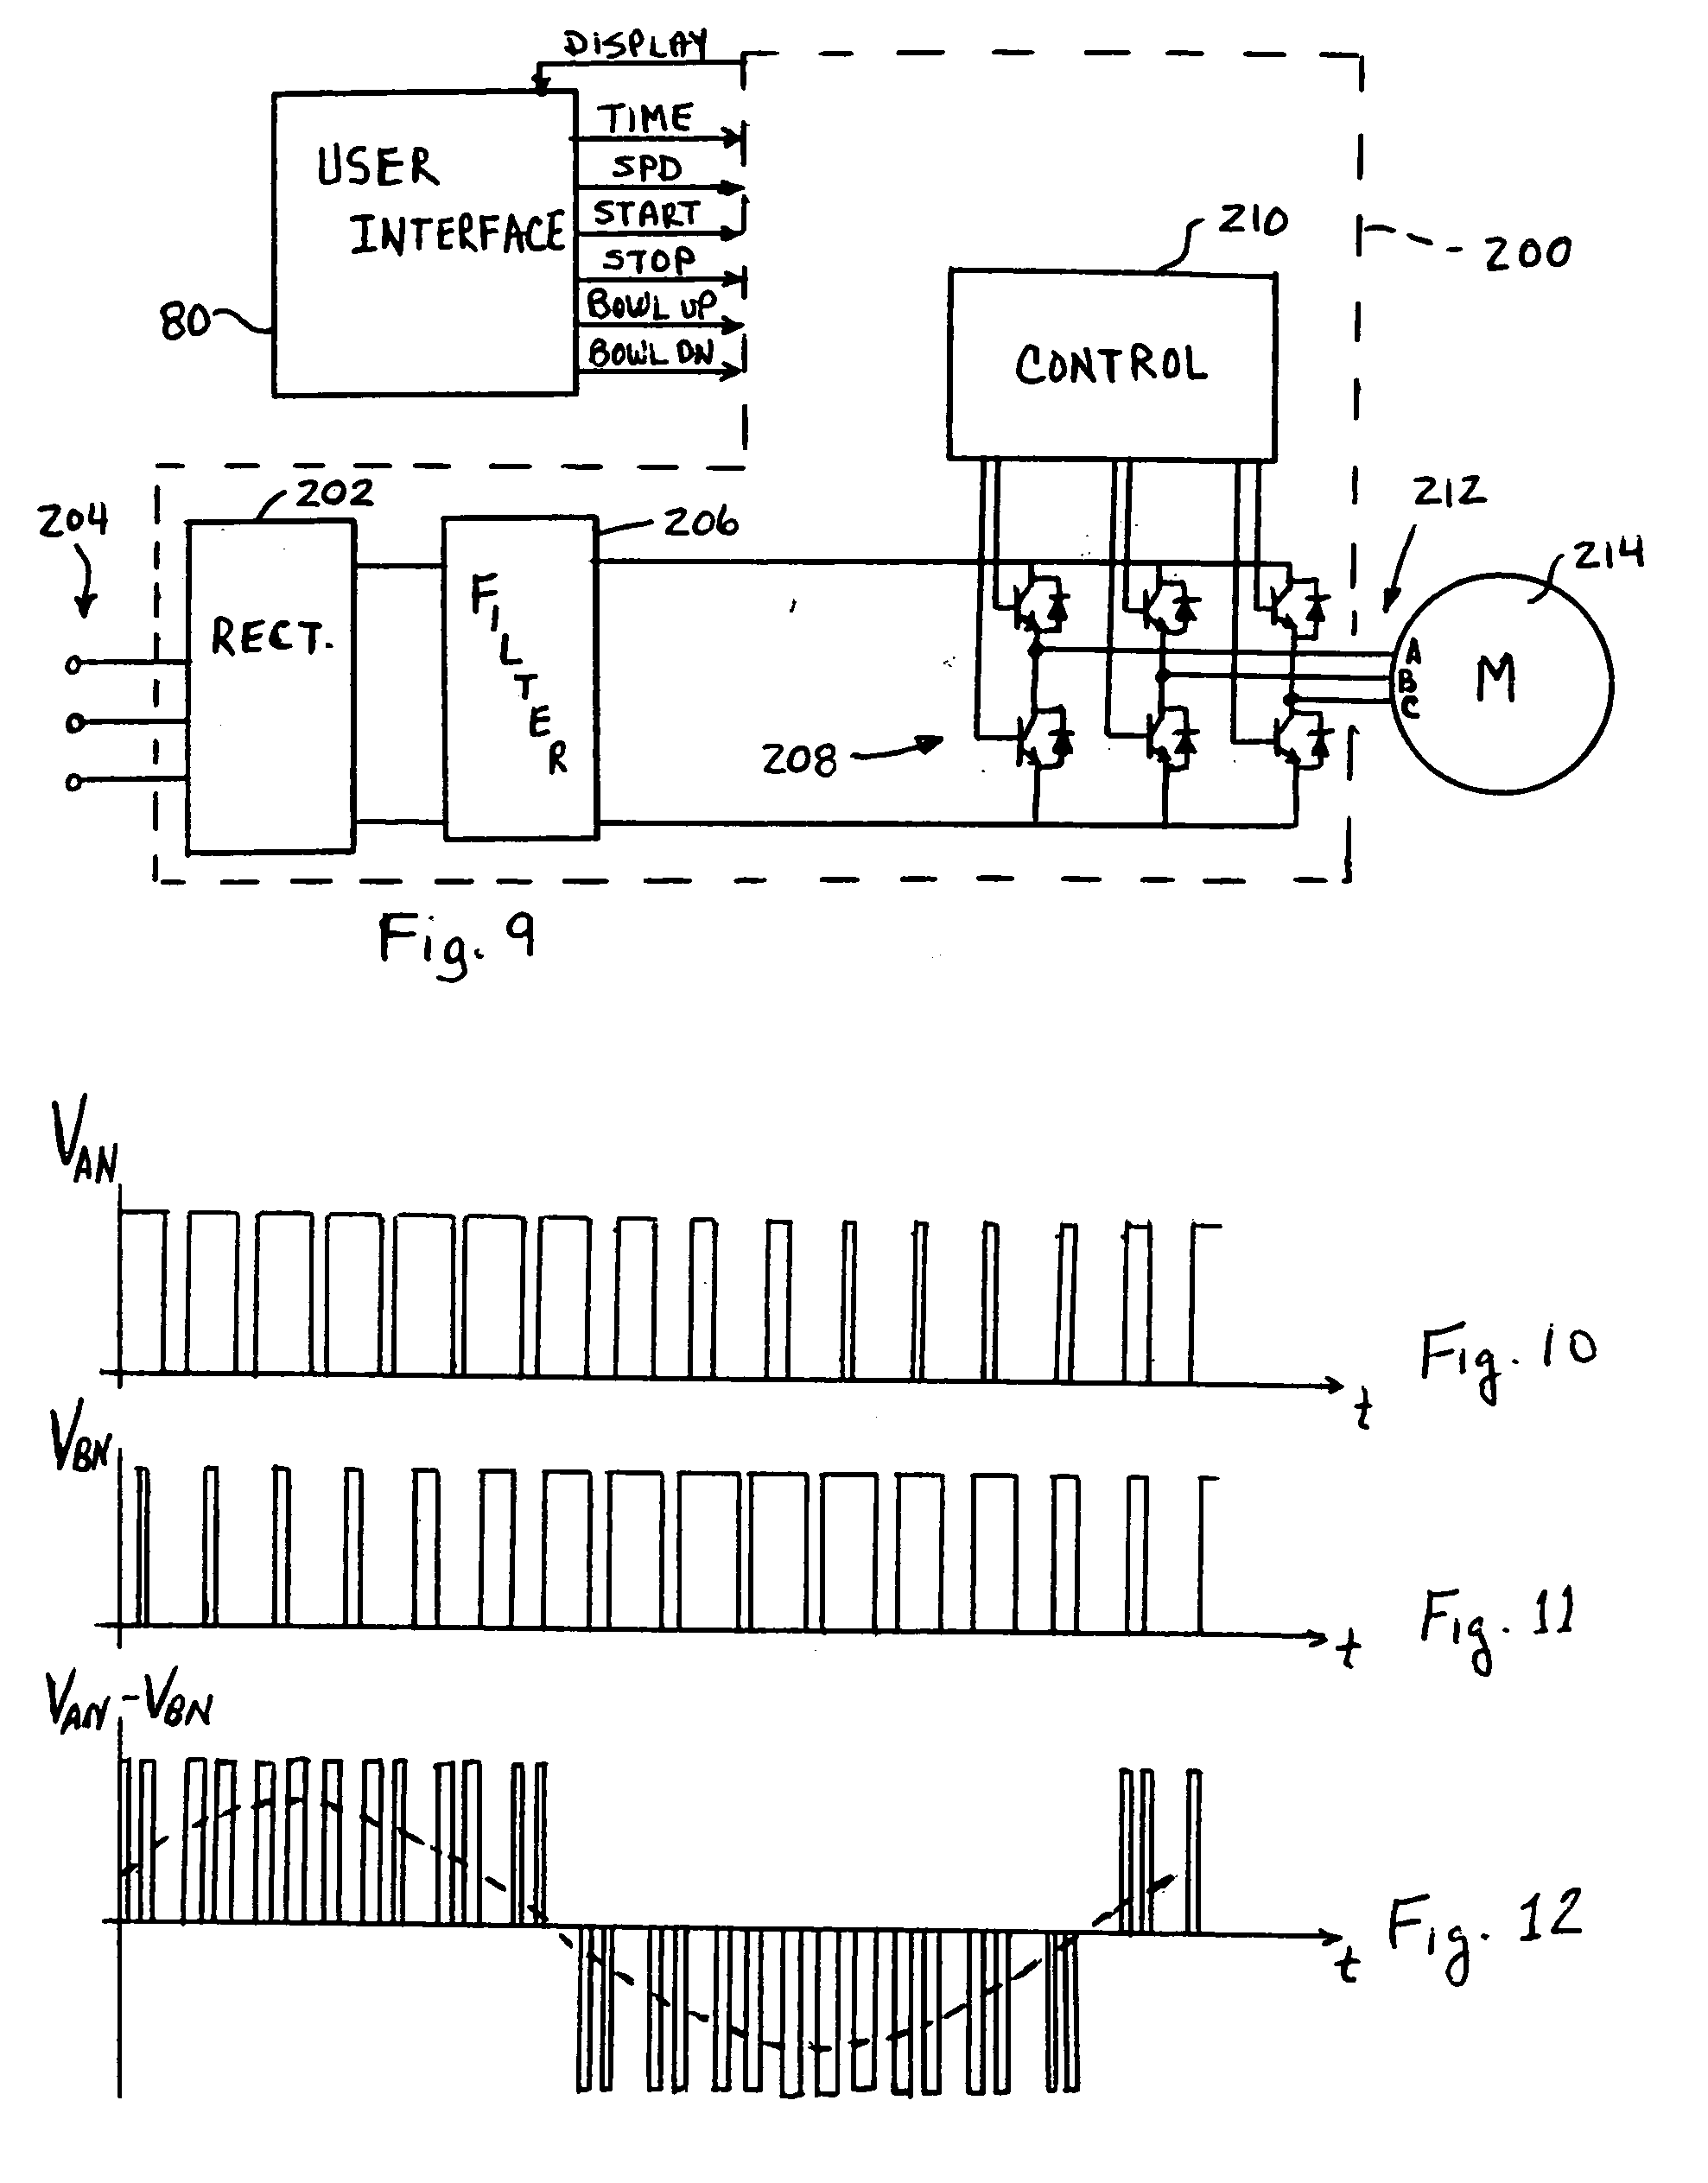 Patent US7273315 - Mixing device with variable sd drive and ... on three-phase wiring diagram, 3 phase outlet wiring diagram, 3 phase water heater wiring diagram, 240 volt wiring diagram, delta transformer wiring diagram, 3 phase panel wiring diagram, 3 phase plug wiring diagram, baldor motor wiring diagram, 3 wire single phase wiring diagram, spa gfci breaker wiring diagram, 3 phase transformer wiring diagram, 480v 3 phase wiring diagram, 3 phase switch wiring diagram, 3 phase 4 wire diagram, cutler hammer motor starter wiring diagram, 3 phase starter wiring diagram, 3 phase convection oven wiring diagram, 240v 3 phase wiring diagram, 3 phase 6 wire motor wiring diagram, 3 phase power wiring diagram,